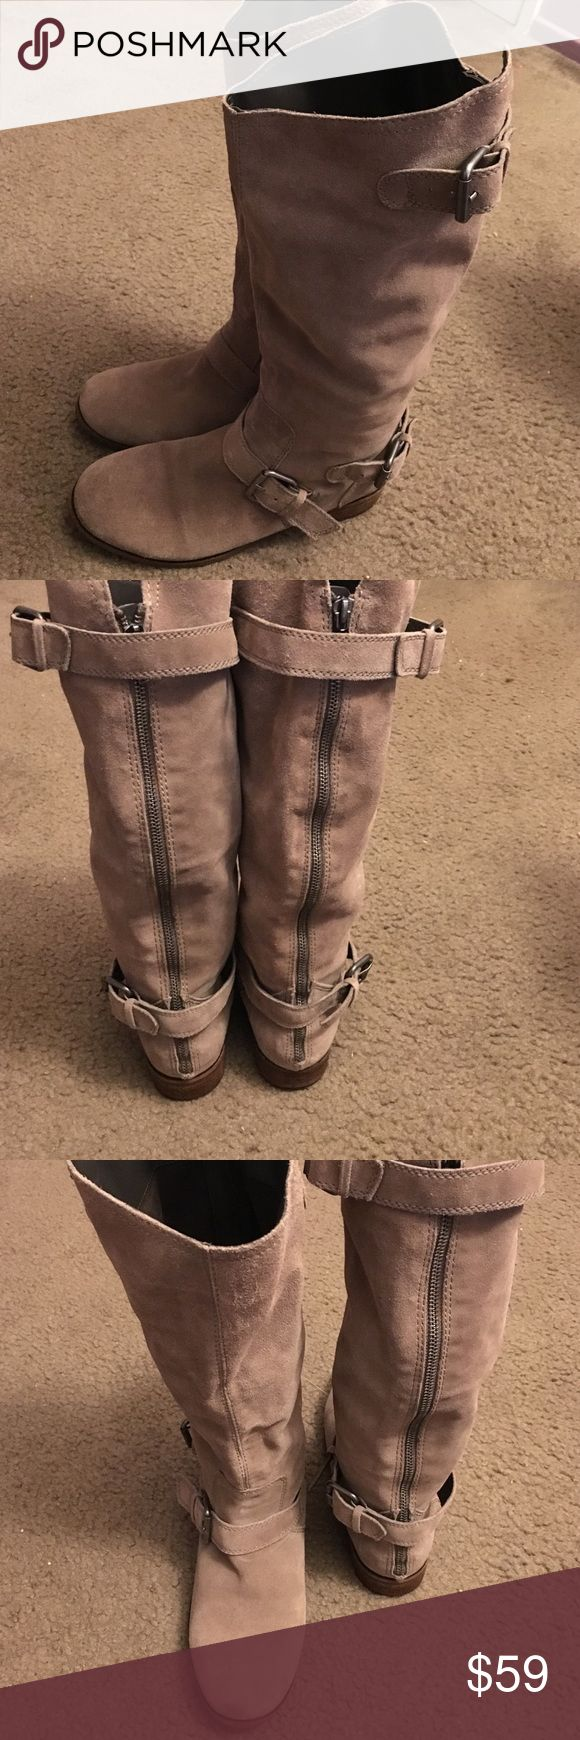 Dolce Vita Suede Beige Boots Beautiful Dolce Vita suede boots! Very comfortable and love the buckles. Perfect with jeans,leggings, skirt or a cute dress!!! Some wear on good shape! Dolce Vita Shoes Winter & Rain Boots